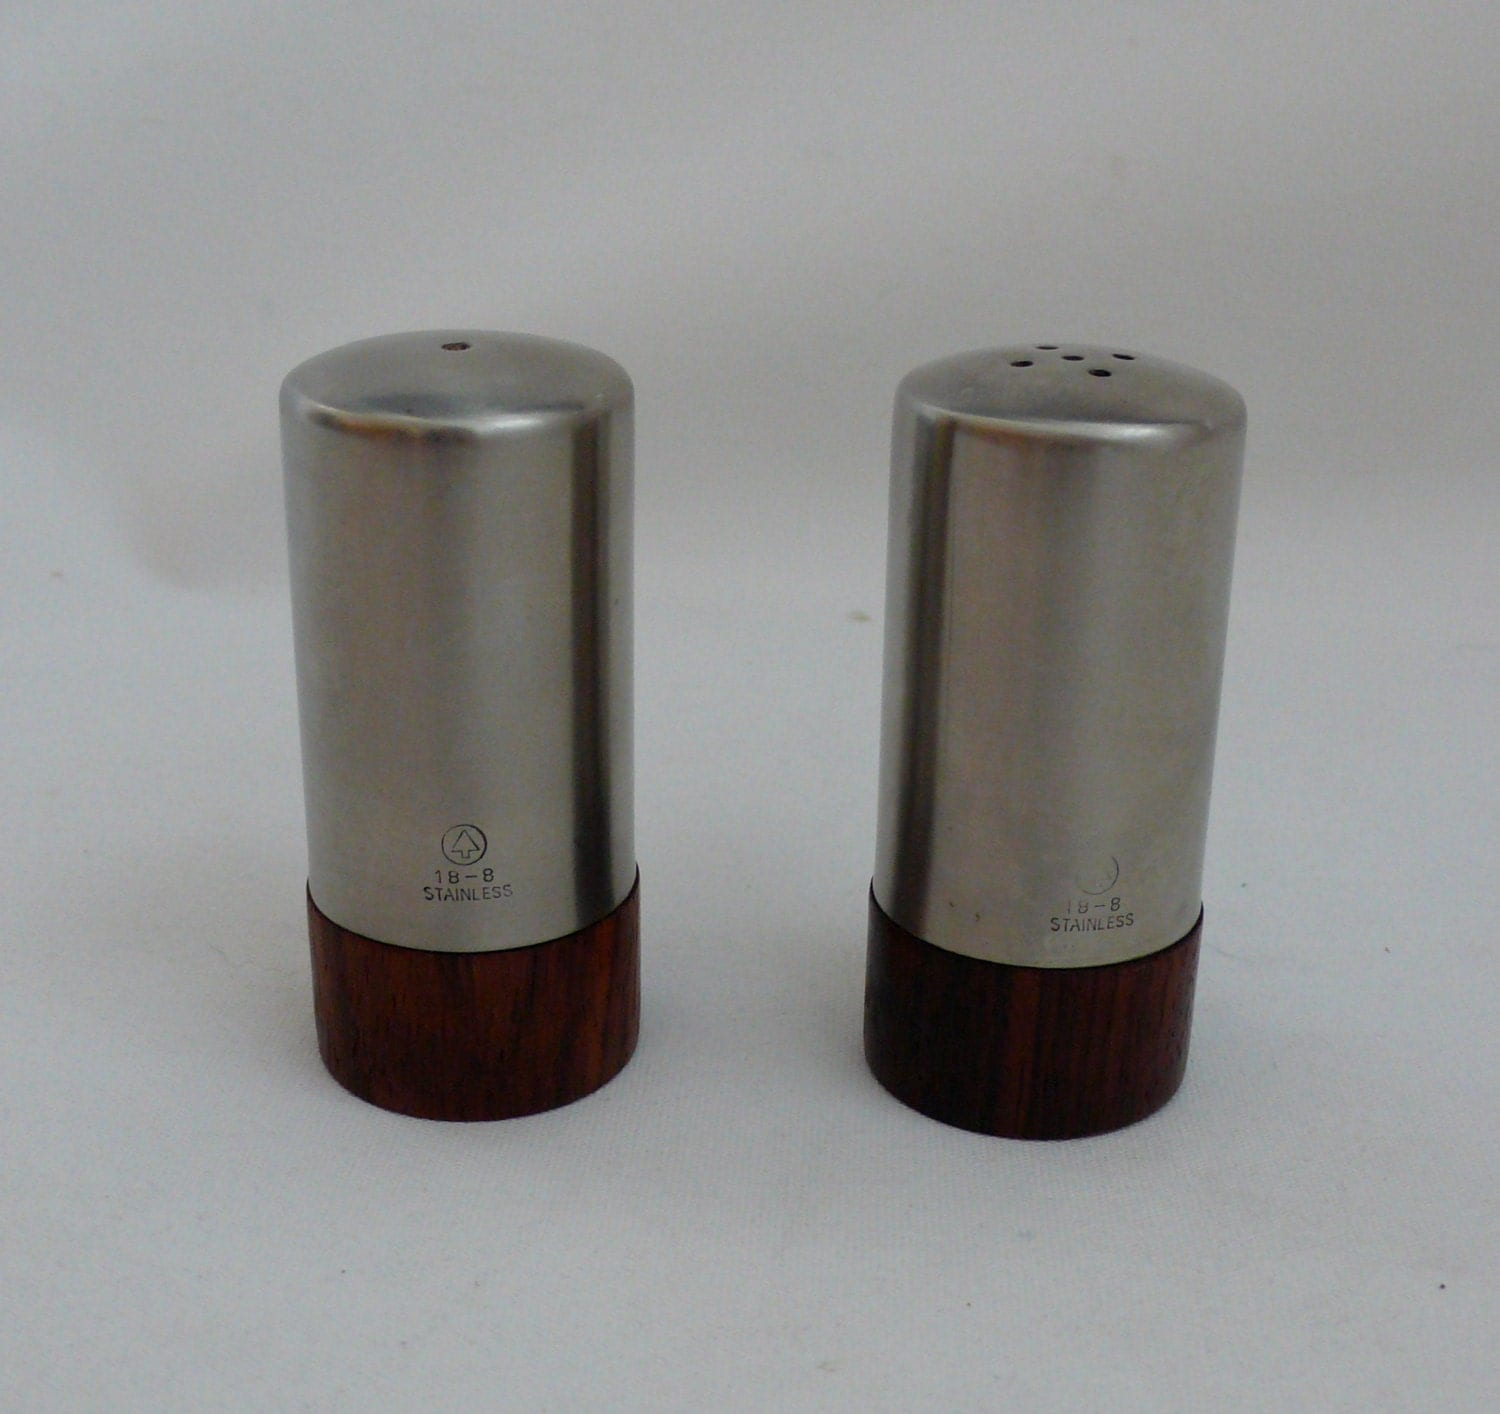 Modern Salt And Pepper Shakers Modern Salt And Pepper Shakers Teak And Stainless Steel